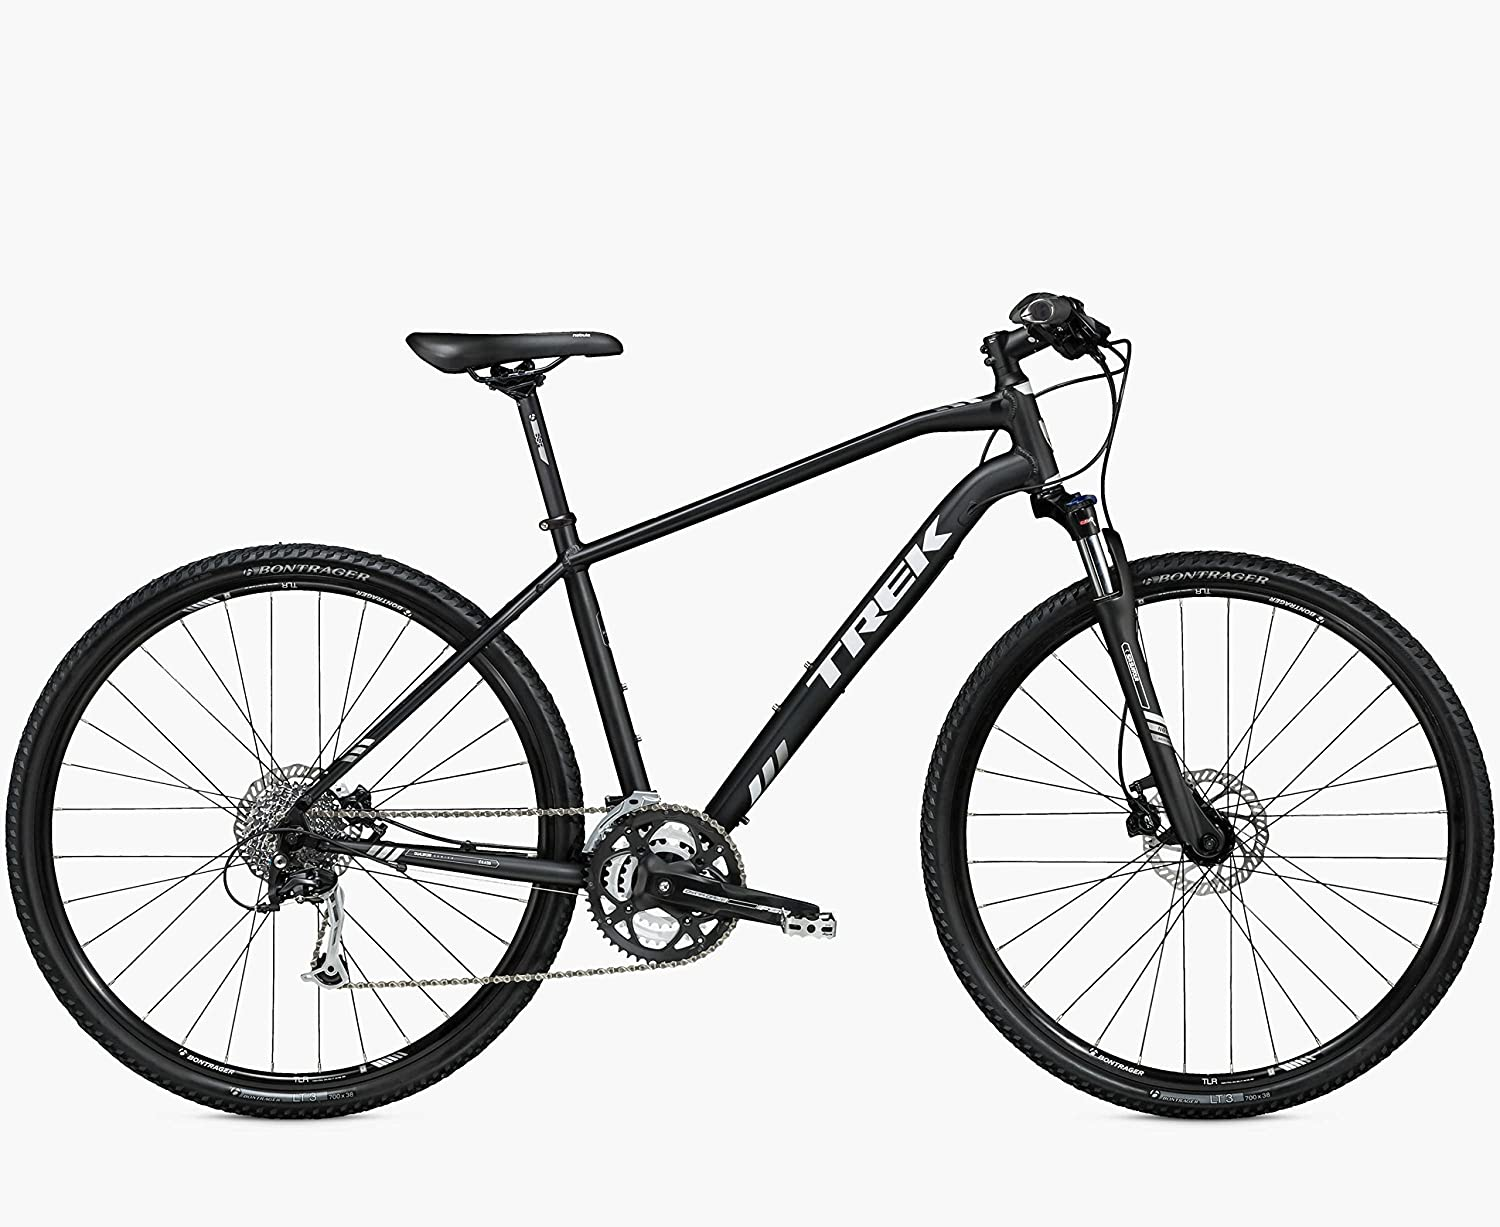 Trek 8.4 DS Dual Sport 22.5 Mountain bike, color negro mate, MTB ...